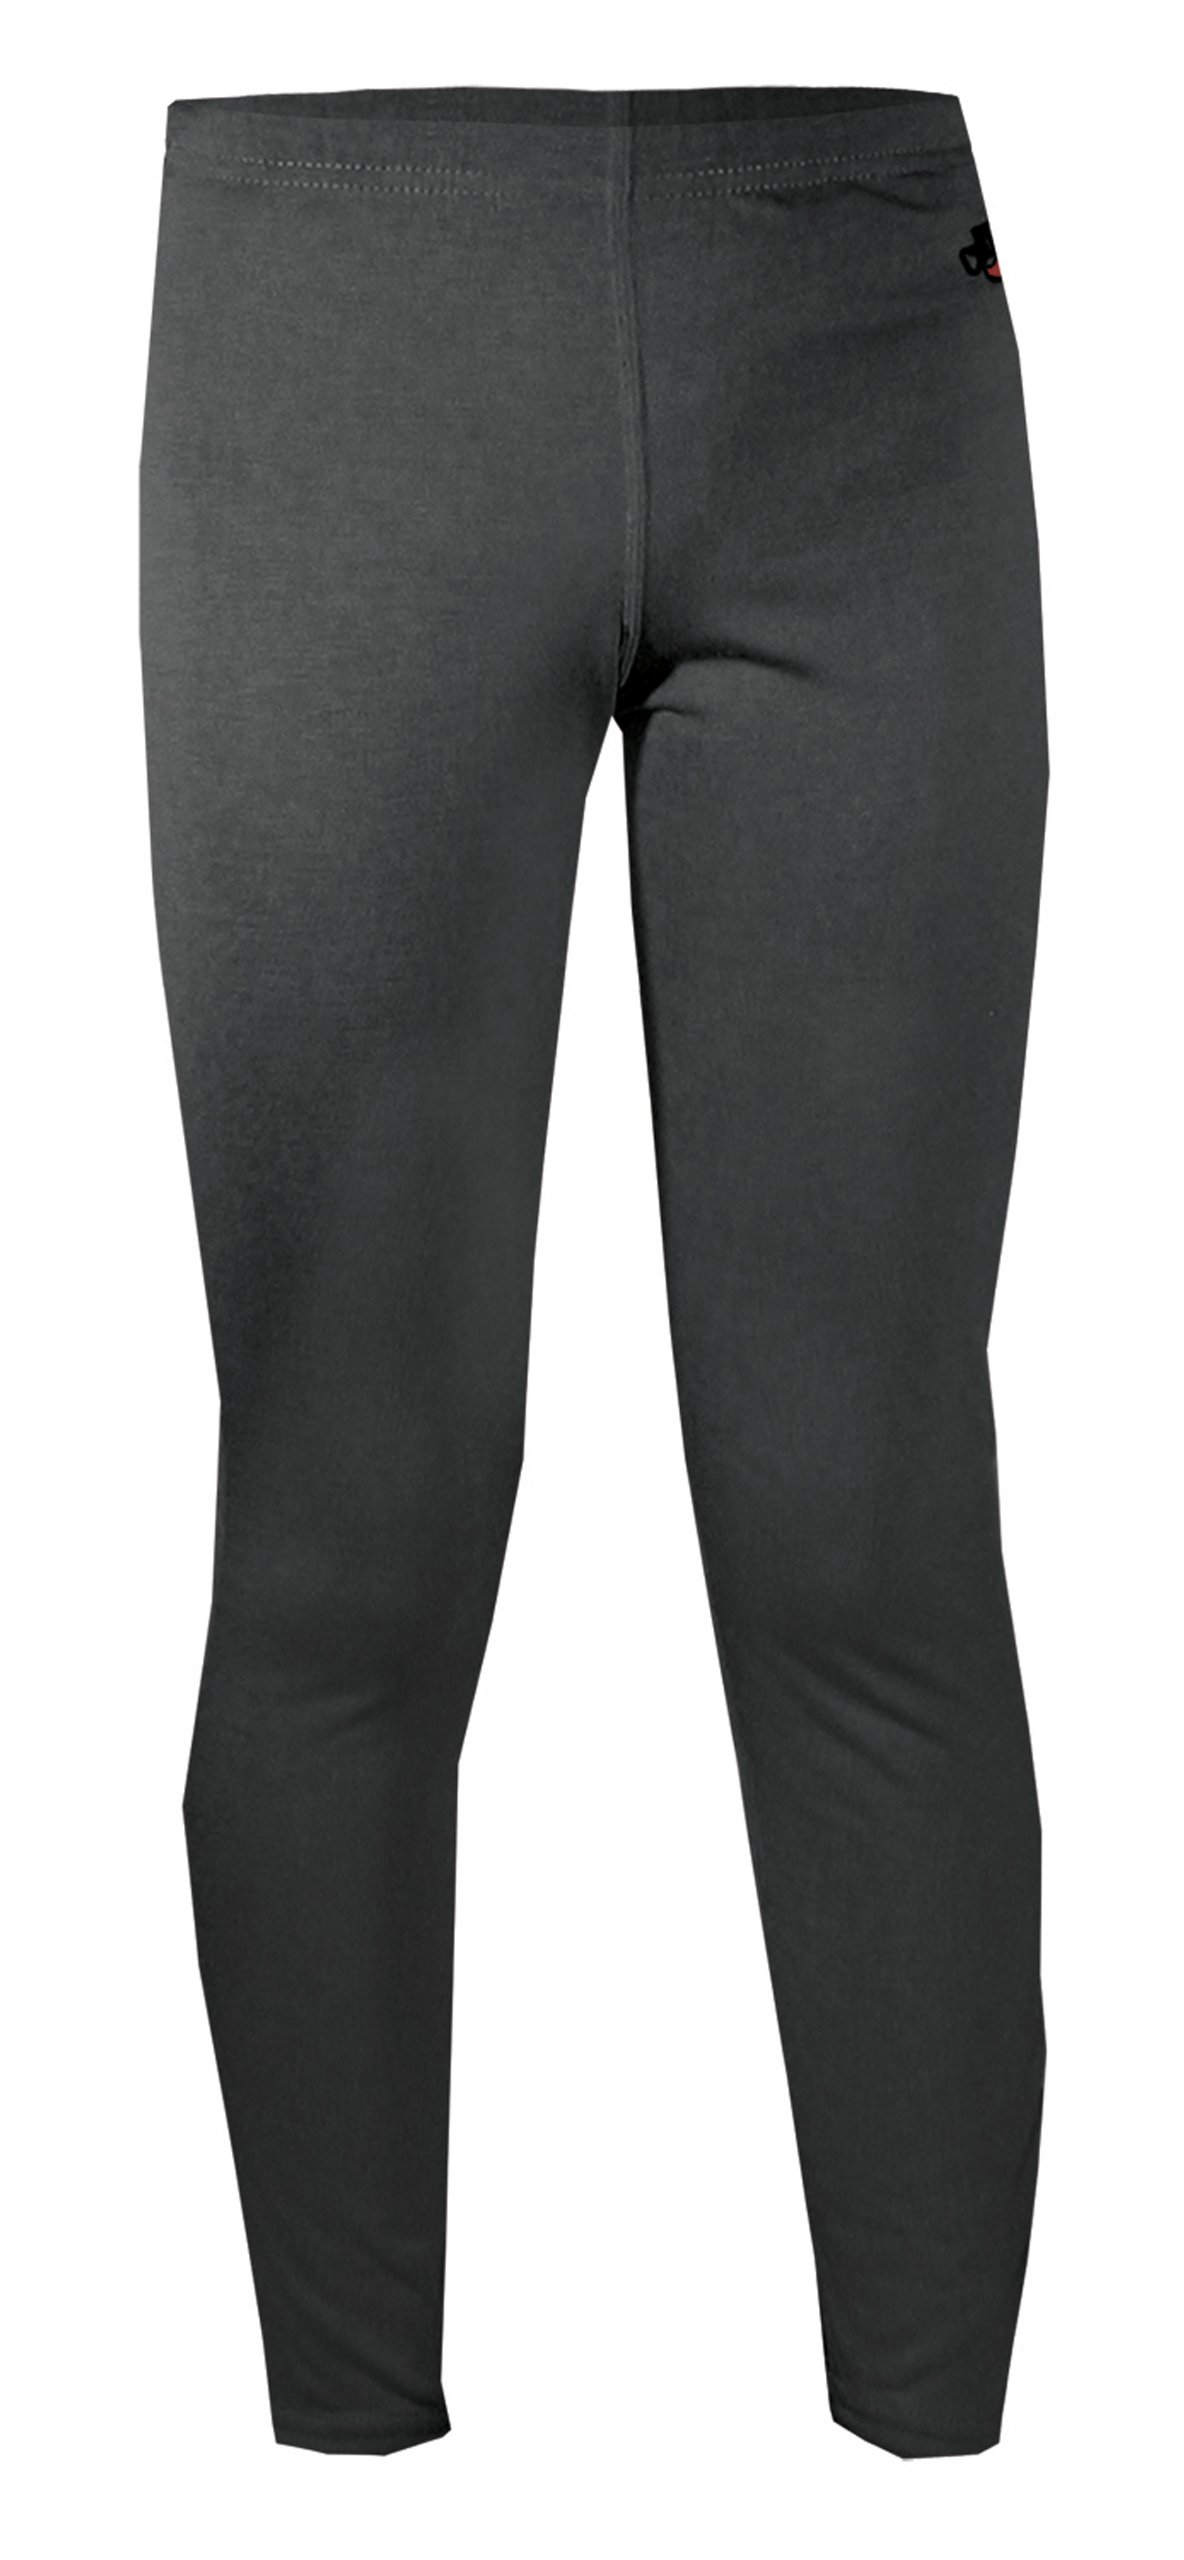 Hot Chillys Youth Midweight Bottom (Black, X-Large)